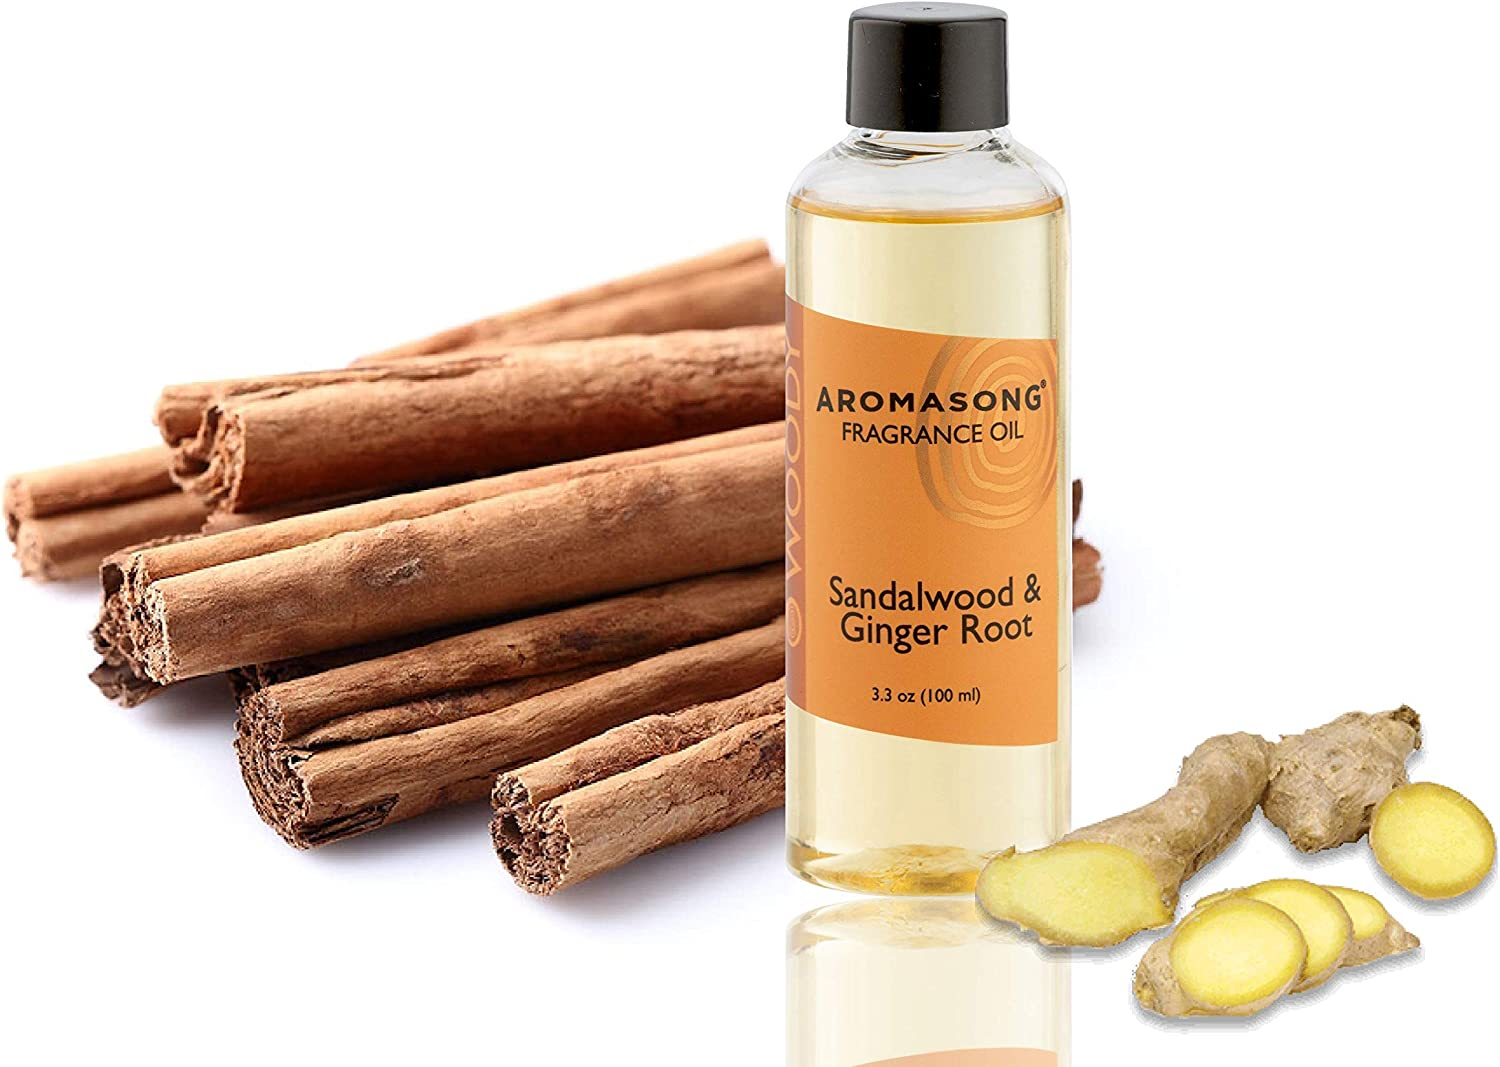 Aromasong Sandalwood & Ginger Root Scented Fragrance Oil Diffuser Refills for Reeds Porcelain and Electric Diffusers in Beautiful Packaging 100 ml